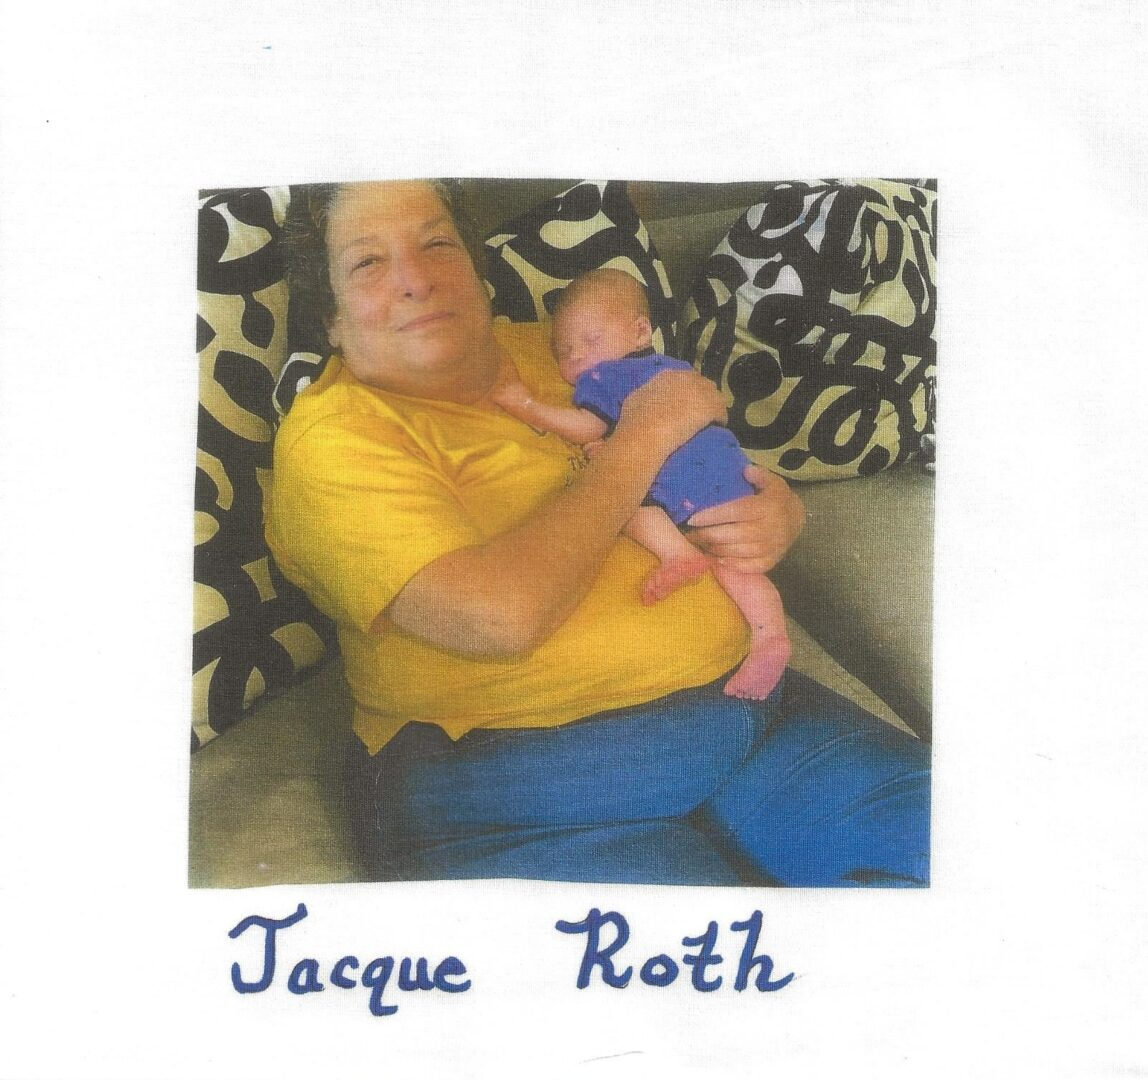 IN MEMORY OF JACQUE ROTH